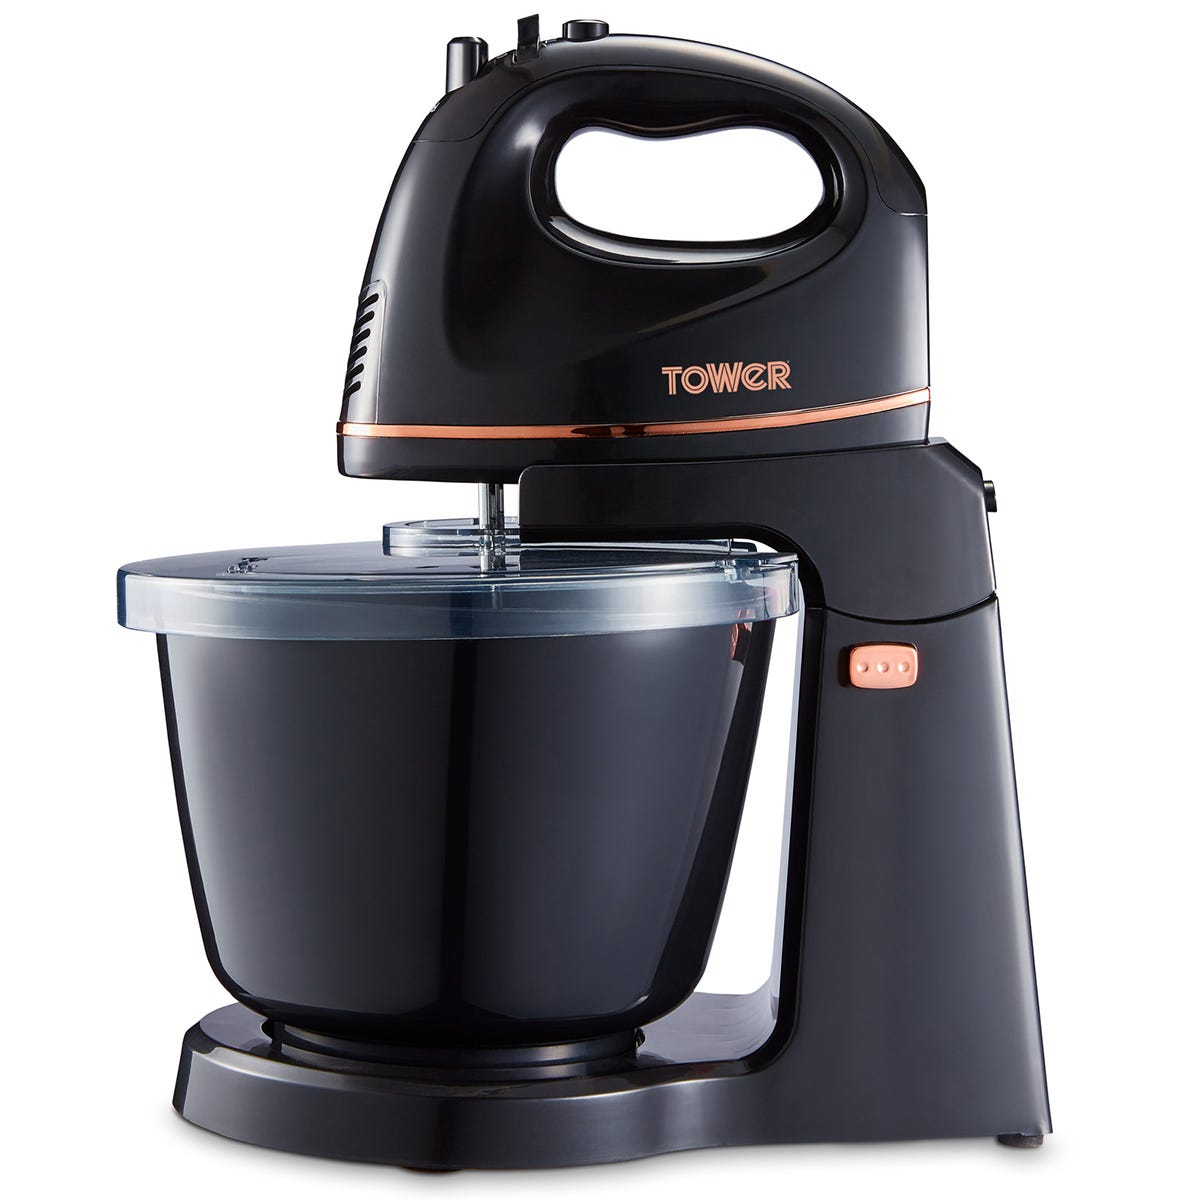 Tower T12039 300W 2.5L Hand/Stand Mixer - Black/Rose Gold